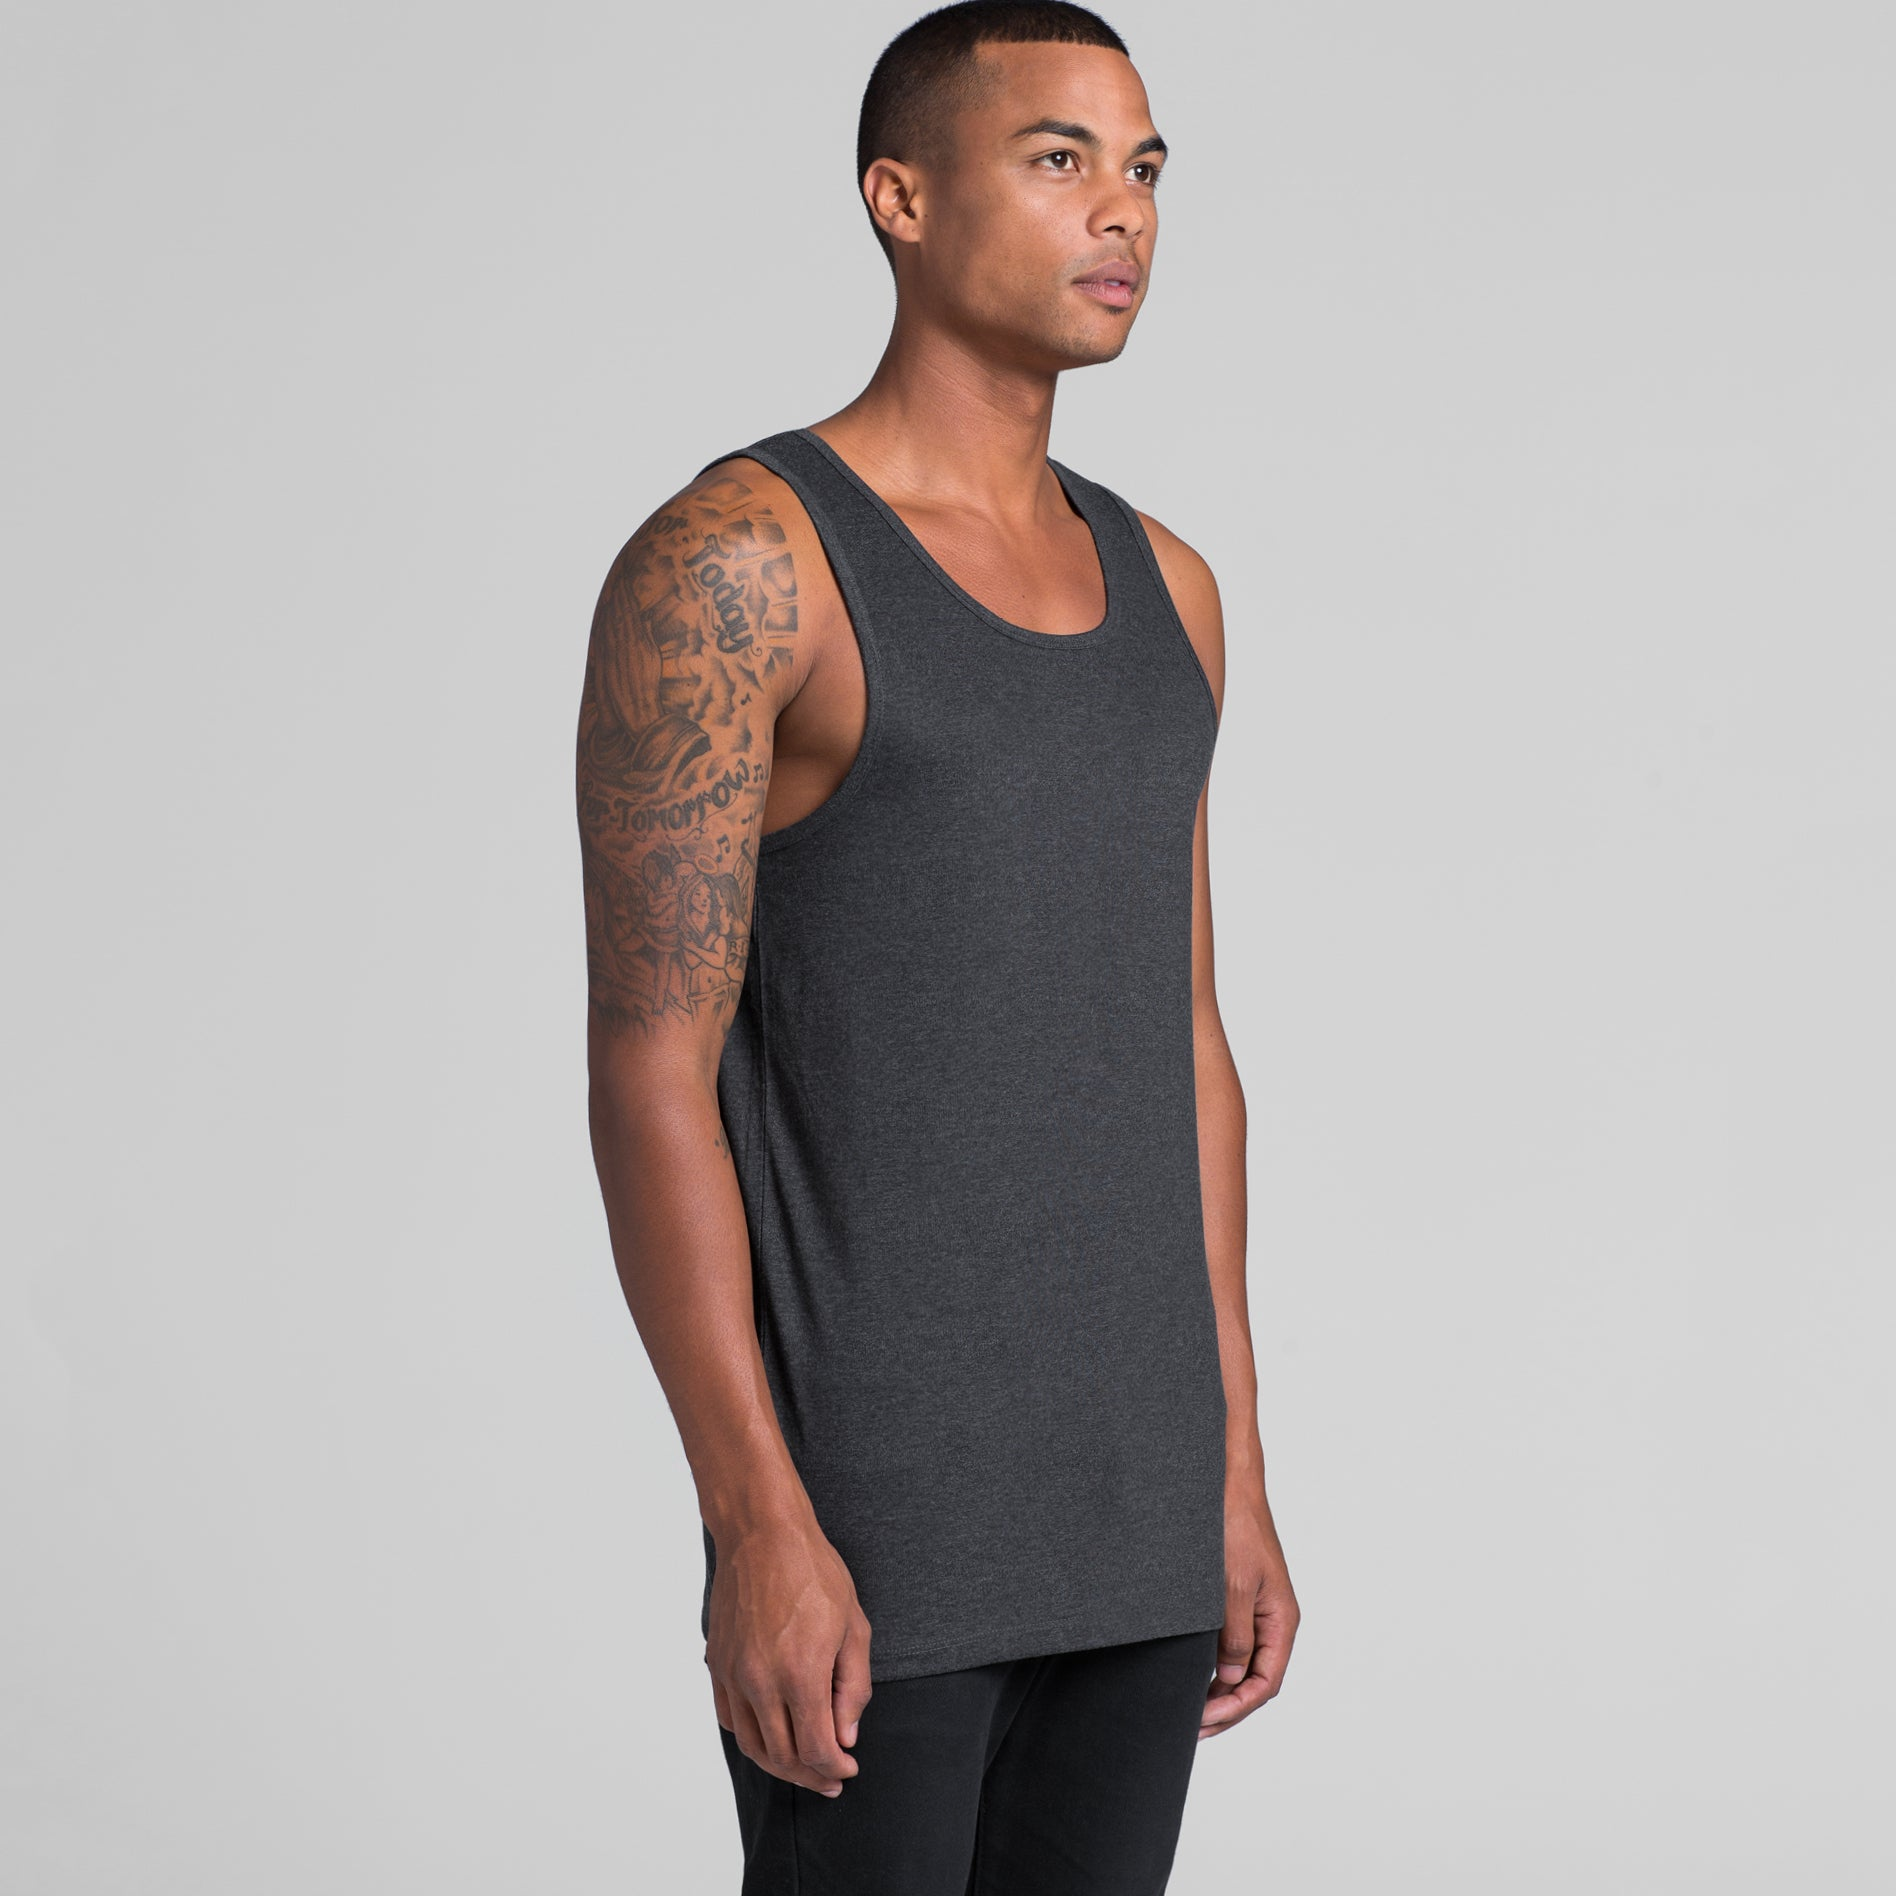 71e4b5c185131 MENS SINGLETS TANKS – The Outfitters